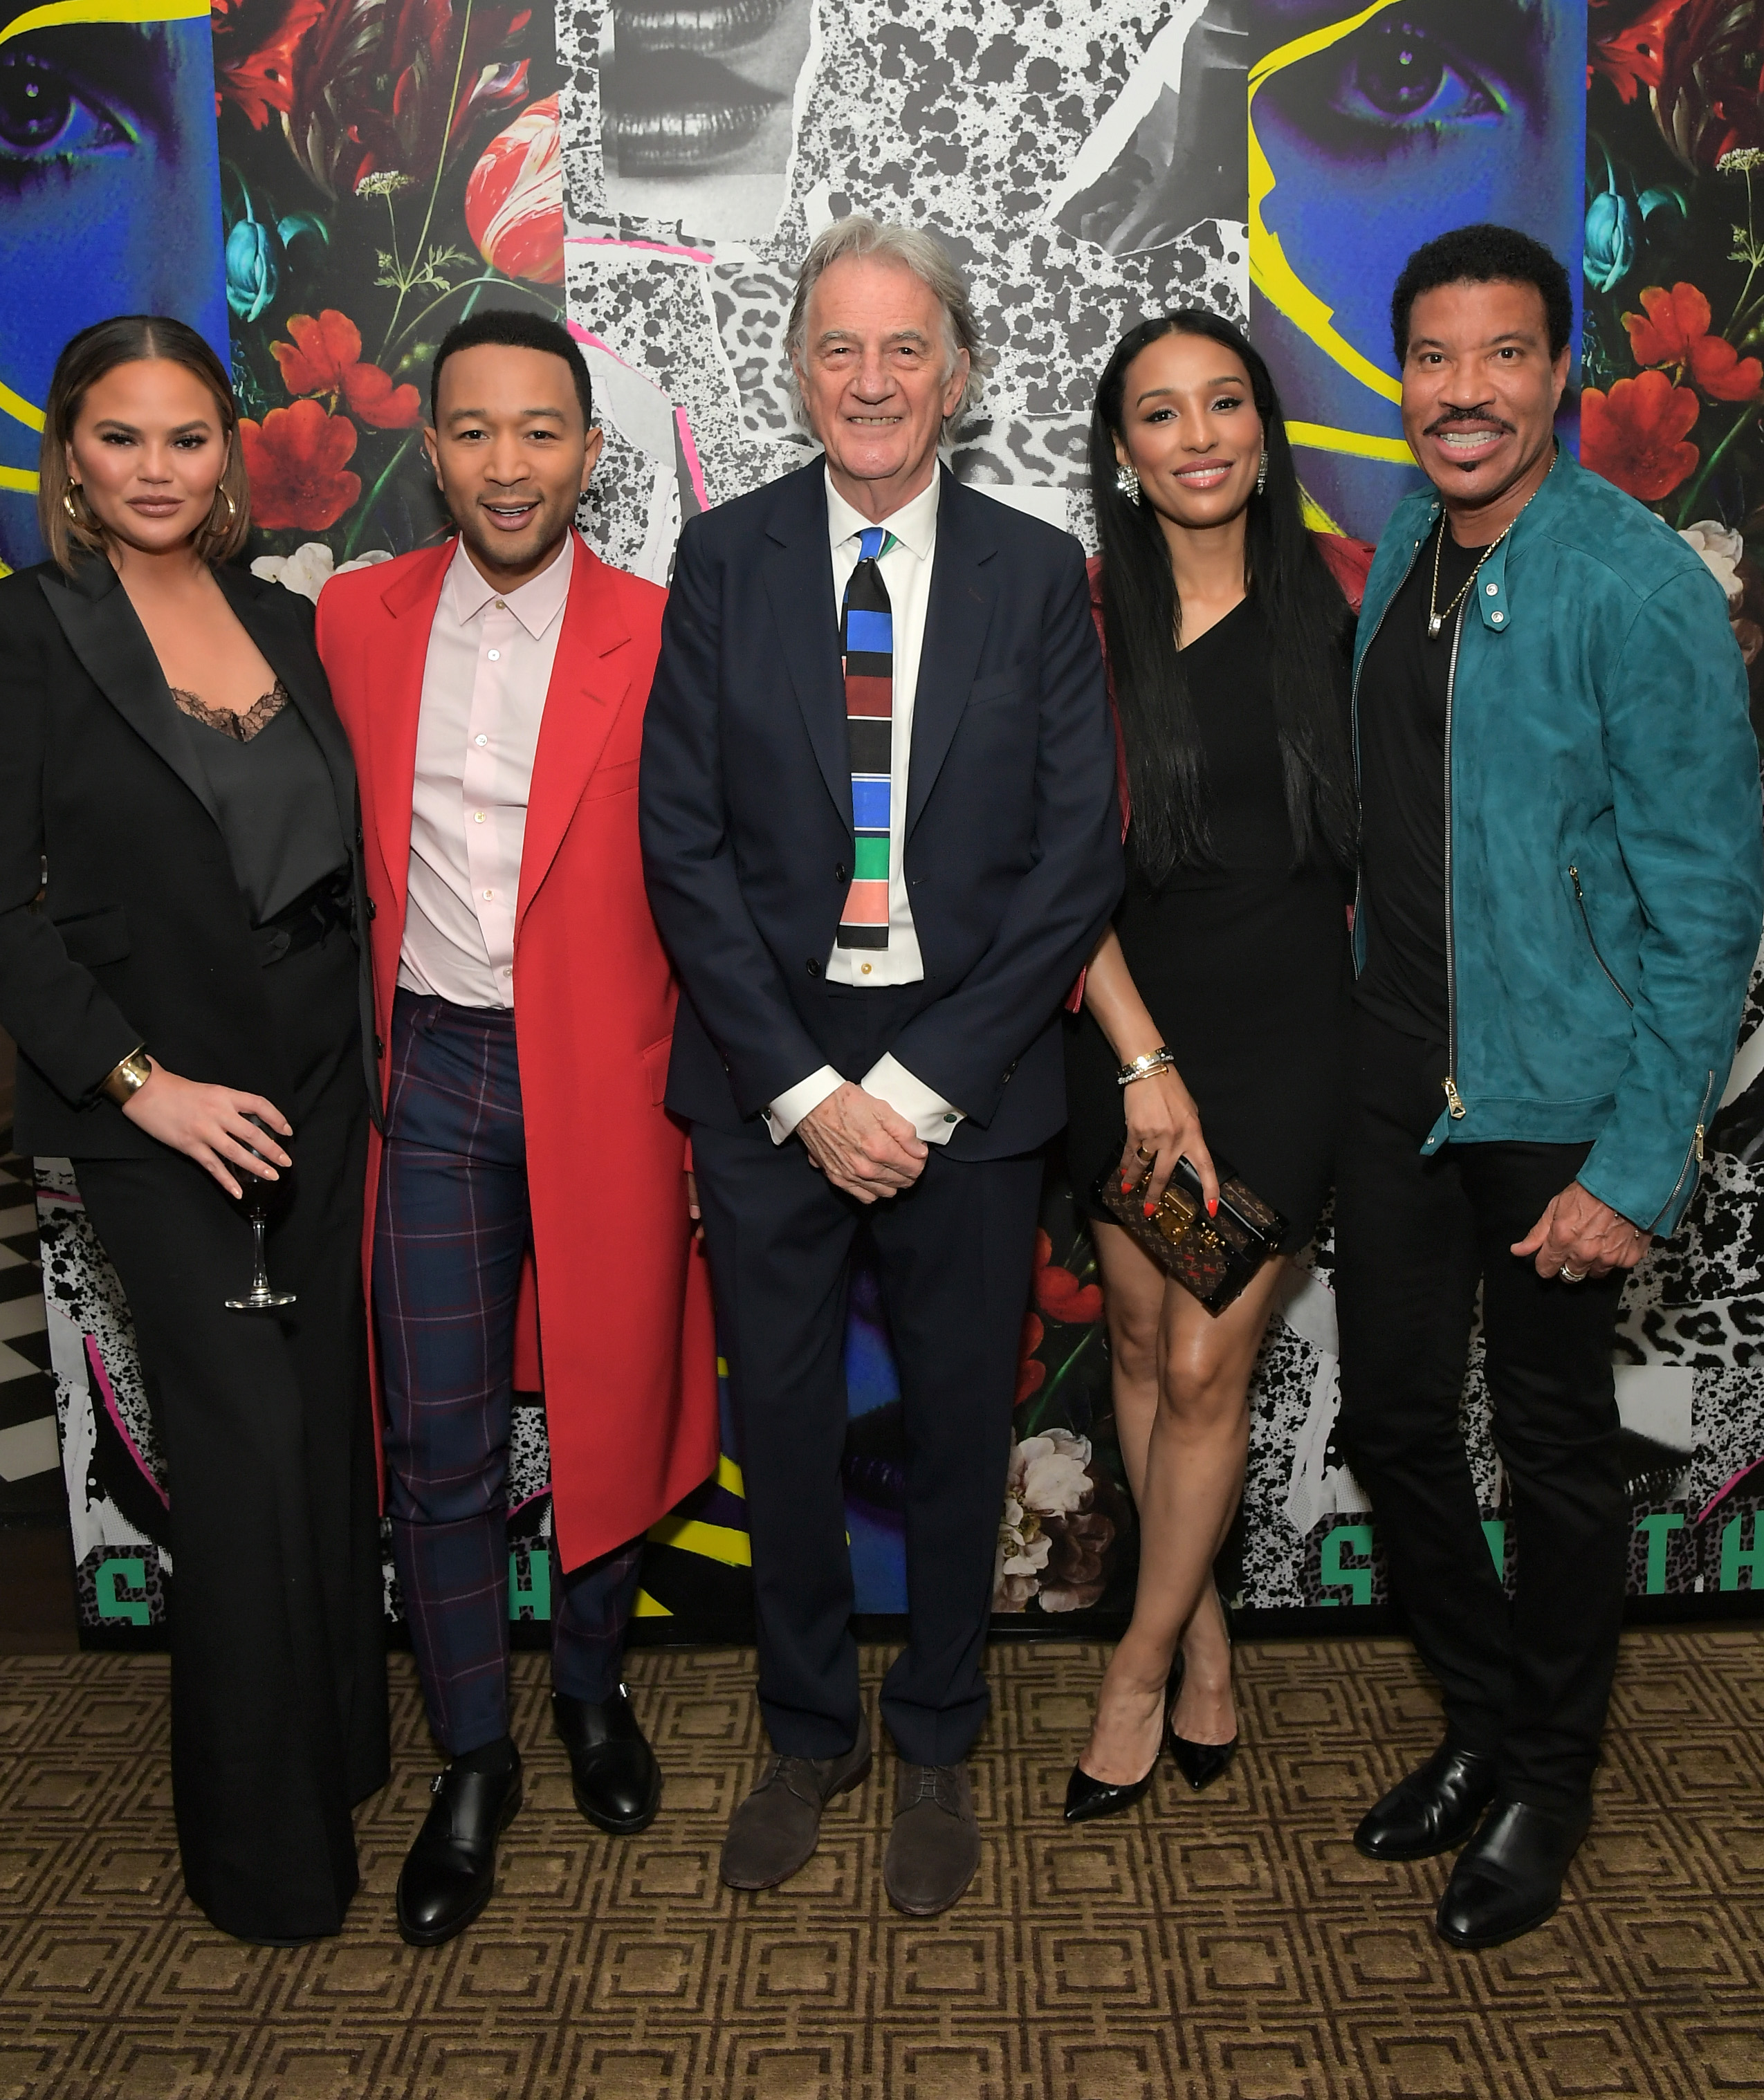 85976a5e5 PAUL SMITH & JOHN LEGEND HOST DINNER AT THE CHATEAU MARMONT, LOS ANGELES,  USA